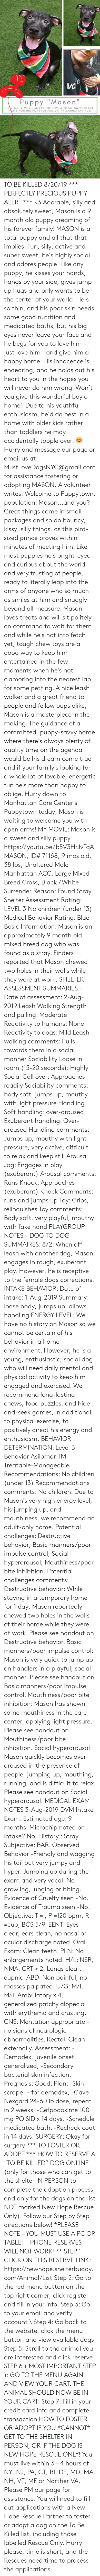 "Children, Click, and Dogs: VO  Puppy ""Mason""  ID 71168, 9 MOS., 38 LBS. OF JOY, A TOTAL SWEETHEART  WAITS FOR HIS FOREVER FAMILY, AT MANHATTAN ACC TO BE KILLED 8/20/19  *** PERFECTLY PRECIOUS PUPPY ALERT *** <3 Adorable, silly and absolutely sweet, Mason is a 9 month old puppy dreaming of his forever family!   MASON is a total puppy and all that that implies. Fun, silly, active and super sweet, he's highly social and adores people. Like any puppy, he kisses your hands, hangs by your side, gives jump up hugs and only wants to be the center of your world. He's so thin, and his poor skin needs some good nutrition and medicated baths, but his big eyes never leave your face and he begs for you to love him – just love him – and give him a happy home. His innocence is endearing, and he holds out his heart to you in the hopes you will never do him wrong. Won't you give this wonderful boy a home? Due to his youthful enthusiasm, he'd do best in a home with older kids rather than toddlers he may accidentally topple over. 😊 Hurry and message our page or email us at MustLoveDogsNYC@gmail.com for assistance fostering or adopting MASON.  A volunteer writes: Welcome to Puppytown, population: Mason...and you? Great things come in small packages and so do bouncy, kissy, silly things, as this pint-sized prince proves within minutes of meeting him. Like most puppies he's bright-eyed and curious about the world and very trusting of people, ready to literally leap into the arms of anyone who so much as smiles at him and snuggly beyond all measure. Mason loves treats and will sit politely on command to wait for them and while he's not into fetch yet, tough chew toys are a good way to keep him entertained in the few moments when he's not clamoring into the nearest lap for some petting. A nice leash walker and a great friend to people and fellow pups alike, Mason is a masterpiece in the making. The guidance of a committed, puppy-savvy home where there's always plenty of quality time on the agenda would be his dream come true and if your family's looking for a whole lot of lovable, energetic fun he's more than happy to oblige. Hurry down to Manhattan Care Center's Puppytown today, Mason is waiting to welcome you with open arms!  MY MOVIE:  Mason is a sweet and silly puppy  https://youtu.be/b5V3HrJvTqA  MASON, ID# 71168, 9 mos old, 38 lbs, Unaltered Male Manhattan ACC, Large Mixed Breed Cross, Black / White  Surrender Reason: Found Stray Shelter Assessment Rating: LEVEL 3 No children (under 13) Medical Behavior Rating: Blue  Basic Information: Mason is an approximately 9 month old mixed breed dog who was found as a stray. Finders reported that Mason chewed two holes in their walls while they were at work.  SHELTER ASSESSMENT SUMMARIES - Date of assessment: 2-Aug-2019  Leash Walking Strength and pulling: Moderate Reactivity to humans: None Reactivity to dogs: Mild Leash walking comments: Pulls towards them in a social manner  Sociability Loose in room (15-20 seconds): Highly Social Call over: Approaches readily Sociability comments: body soft, jumps up, mouthy with light pressure  Handling  Soft handling: over-aroused  Exuberant handling: Over-aroused Handling comments: Jumps up, mouthy with light pressure, very active, difficult to relax and keep still  Arousal Jog: Engages in play (exuberant) Arousal comments: Runs  Knock: Approaches (exuberant) Knock Comments: runs and jumps up   Toy: Grips, relinquishes  Toy comments: Body soft, very playful, mouthy with fake hand  PLAYGROUP NOTES - DOG TO DOG SUMMAIRES: 8/2: When off leash with another dog, Mason engages in rough, exuberant play. However, he is receptive to the female dogs corrections.  INTAKE BEHAVIOR: Date of intake: 1-Aug-2019 Summary: loose body, jumps up, allows handling  ENERGY LEVEL: We have no history on Mason so we cannot be certain of his behavior in a home environment. However, he is a young, enthusiastic, social dog who will need daily mental and physical activity to keep him engaged and exercised. We recommend long-lasting chews, food puzzles, and hide-and-seek games, in additional to physical exercise, to positively direct his energy and enthusiasm.  BEHAVIOR DETERMINATION: Level 3 Behavior Asilomar TM - Treatable-Manageable  Recommendations: No children (under 13)  Recommendations comments: No children: Due to Mason's very high energy level, his jumping up, and mouthiness, we recommend an adult-only home.  Potential challenges: Destructive behavior, Basic manners/poor impulse control, Social hyperarousal, Mouthiness/poor bite inhibition.  Potential challenges comments: Destructive behavior: While staying in a temporary home for 1 day, Mason reportedly chewed two holes in the walls of their home while they were at work. Please see handout on Destructive behavior.  Basic manners/poor impulse control: Mason is very quick to jump up on handlers in a playful, social manner. Please see handout on Basic manners/poor impulse control.  Mouthiness/poor bite inhibition: Mason has shown some mouthiness in the care center, applying light pressure. Please see handout on Mouthiness/poor bite inhibition. Social hyperarousal: Mason quickly becomes over aroused in the presence of people, jumping up, mouthing, running, and is difficult to relax. Please see handout on Social hyperarousal.  MEDICAL EXAM NOTES   3-Aug-2019  DVM Intake Exam. Estimated age: 9 months. Microchip noted on Intake? No. History : Stray. Subjective: BAR. Observed Behavior -Friendly and wagging his tail but very jumpy and hyper. Jumping up during the exam and very vocal. No growling, lunging or biting. Evidence of Cruelty seen -No. Evidence of Trauma seen -No. Objective: T = , P =120 bpm, R =eup, BCS 5/9. EENT: Eyes clear, ears clean, no nasal or ocular discharge noted. Oral Exam: Clean teeth. PLN: No enlargements noted. H/L: NSR, NMA, CRT < 2, Lungs clear, eupnic. ABD: Non painful, no masses palpated. U/G: M/I. MSI: Ambulatory x 4, generalized patchy alopecia with erythema and crusting. CNS: Mentation appropriate - no signs of neurologic abnormalities. Rectal: Clean externally. Assessment: -Demodex, juvenile onset, generalized, -Secondary bacterial skin infection. Prognosis: Good. Plan: -Skin scrape: + for demodex, -Gave Nexgard 24-60 lb dose, repeat in 2 weeks, -Cefpodoxime 100 mg PO SID x 14 days, -Schedule medicated bath. -Recheck coat in 14 days.  SURGERY: Okay for surgery  *** TO FOSTER OR ADOPT ***  HOW TO RESERVE A ""TO BE KILLED"" DOG ONLINE (only for those who can get to the shelter IN PERSON to complete the adoption process, and only for the dogs on the list NOT marked New Hope Rescue Only). Follow our Step by Step directions below!   *PLEASE NOTE – YOU MUST USE A PC OR TABLET – PHONE RESERVES WILL NOT WORK! **   STEP 1: CLICK ON THIS RESERVE LINK: https://newhope.shelterbuddy.com/Animal/List  Step 2: Go to the red menu button on the top right corner, click register and fill in your info.   Step 3: Go to your email and verify account  \ Step 4: Go back to the website, click the menu button and view available dogs   Step 5: Scroll to the animal you are interested and click reserve   STEP 6 ( MOST IMPORTANT STEP ): GO TO THE MENU AGAIN AND VIEW YOUR CART. THE ANIMAL SHOULD NOW BE IN YOUR CART!  Step 7: Fill in your credit card info and complete transaction   HOW TO FOSTER OR ADOPT IF YOU *CANNOT* GET TO THE SHELTER IN PERSON, OR IF THE DOG IS NEW HOPE RESCUE ONLY!   You must live within 3 – 4 hours of NY, NJ, PA, CT, RI, DE, MD, MA, NH, VT, ME or Norther VA.   Please PM our page for assistance. You will need to fill out applications with a New Hope Rescue Partner to foster or adopt a dog on the To Be Killed list, including those labelled Rescue Only. Hurry please, time is short, and the Rescues need time to process the applications."